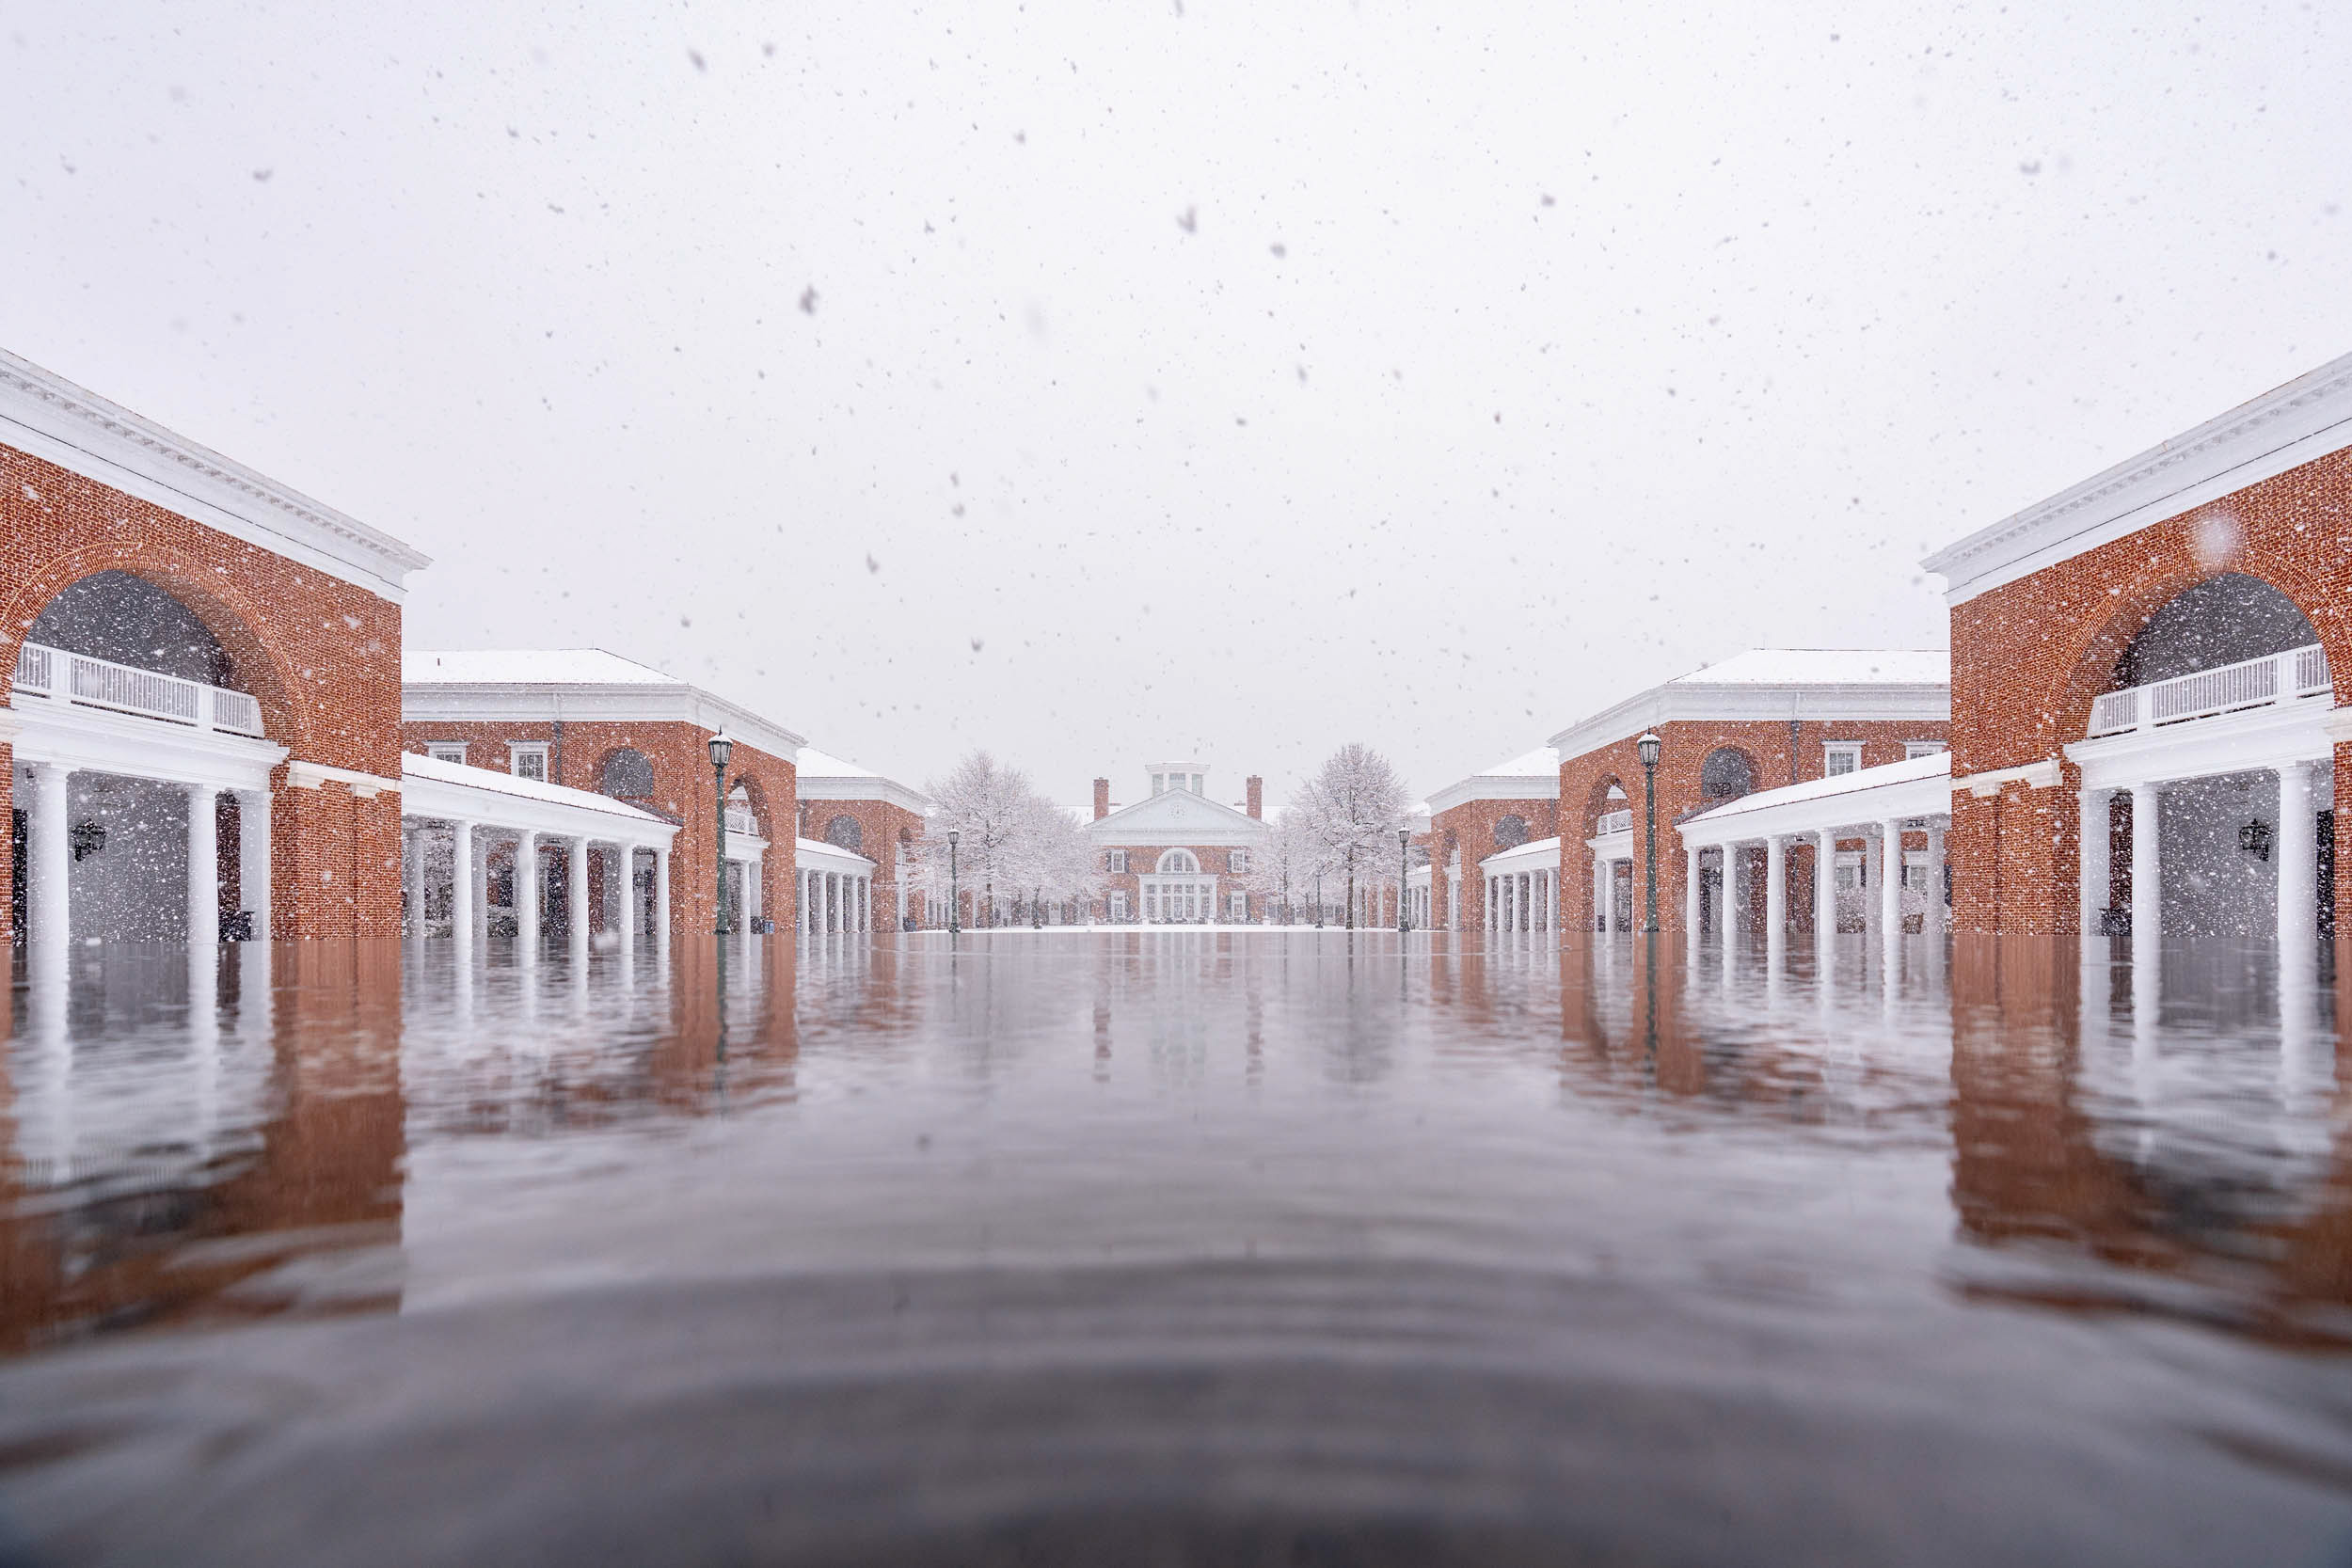 Don't worry, the Darden School of Business didn't flood – it's a reflection.